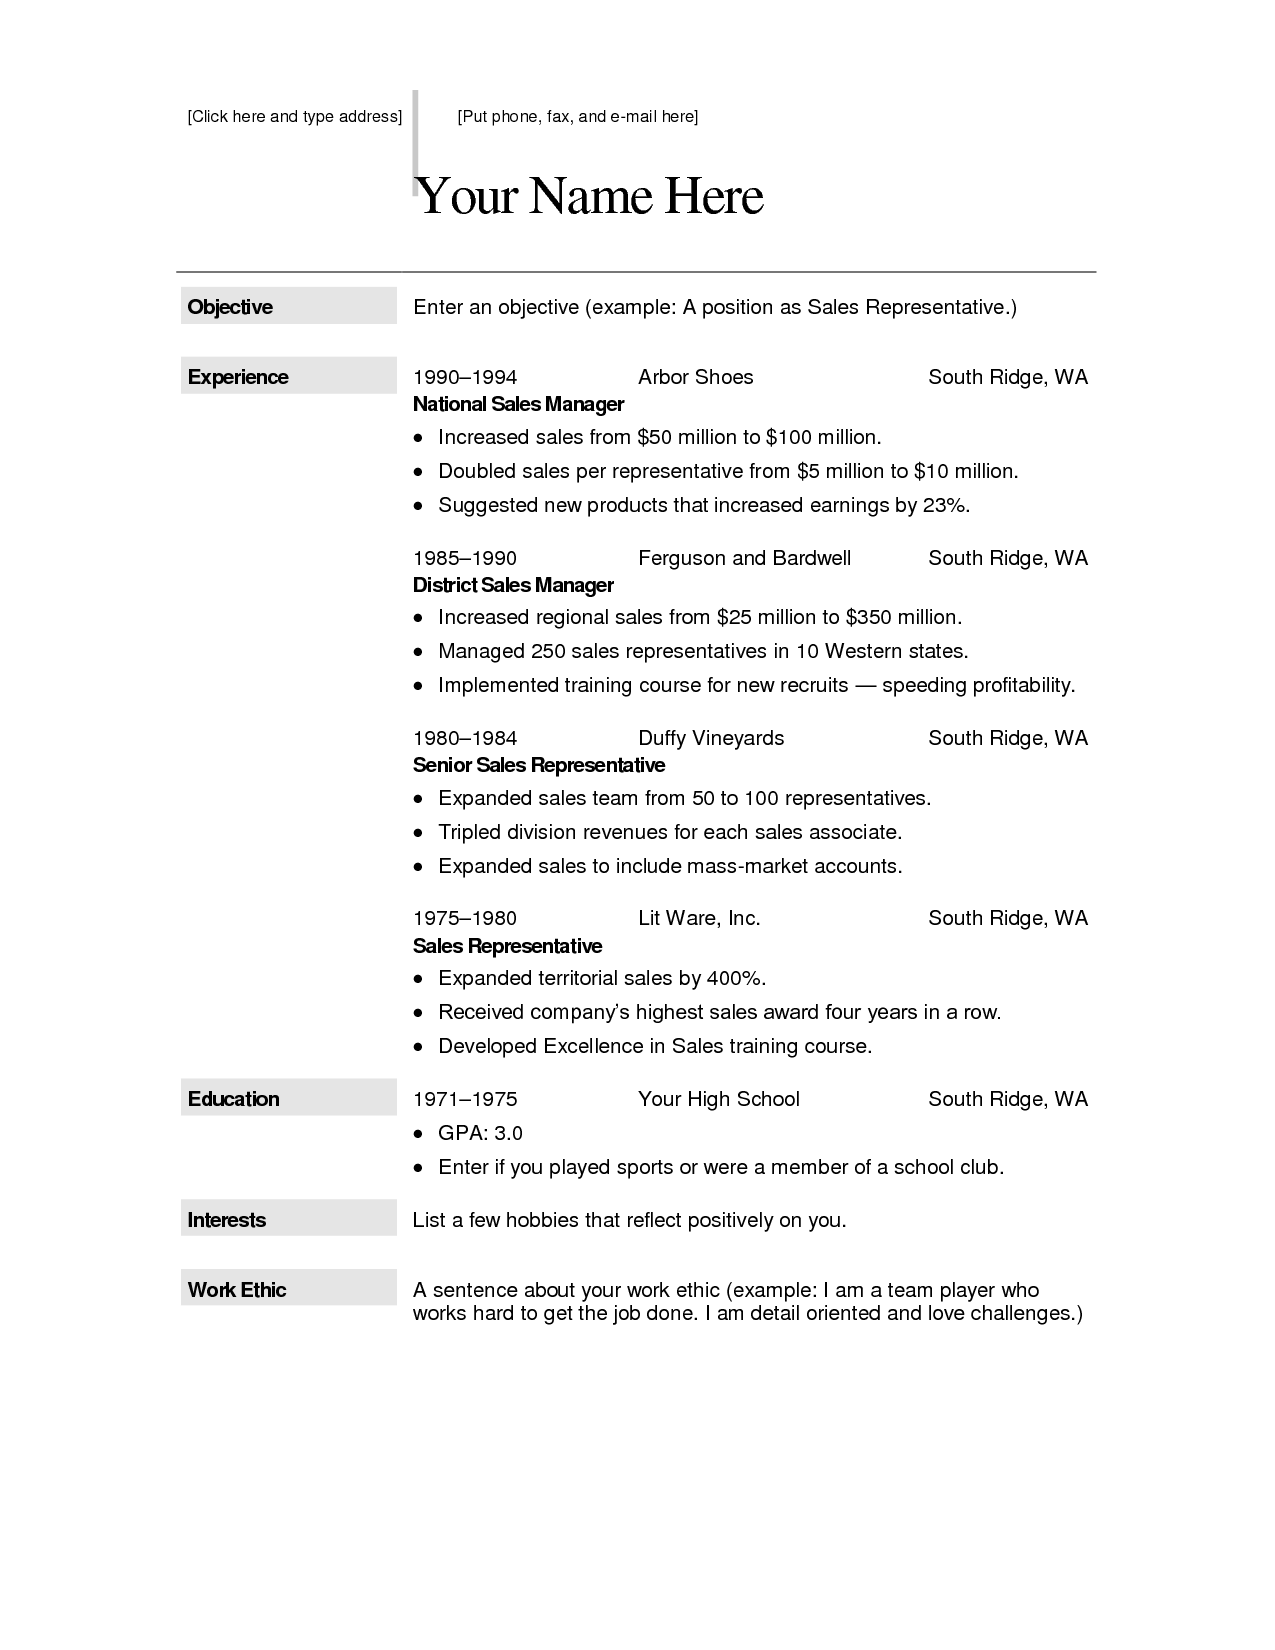 free creative resume templates for macfree creative resume templates for mac modern resume template - Best Resume Templates Free Download